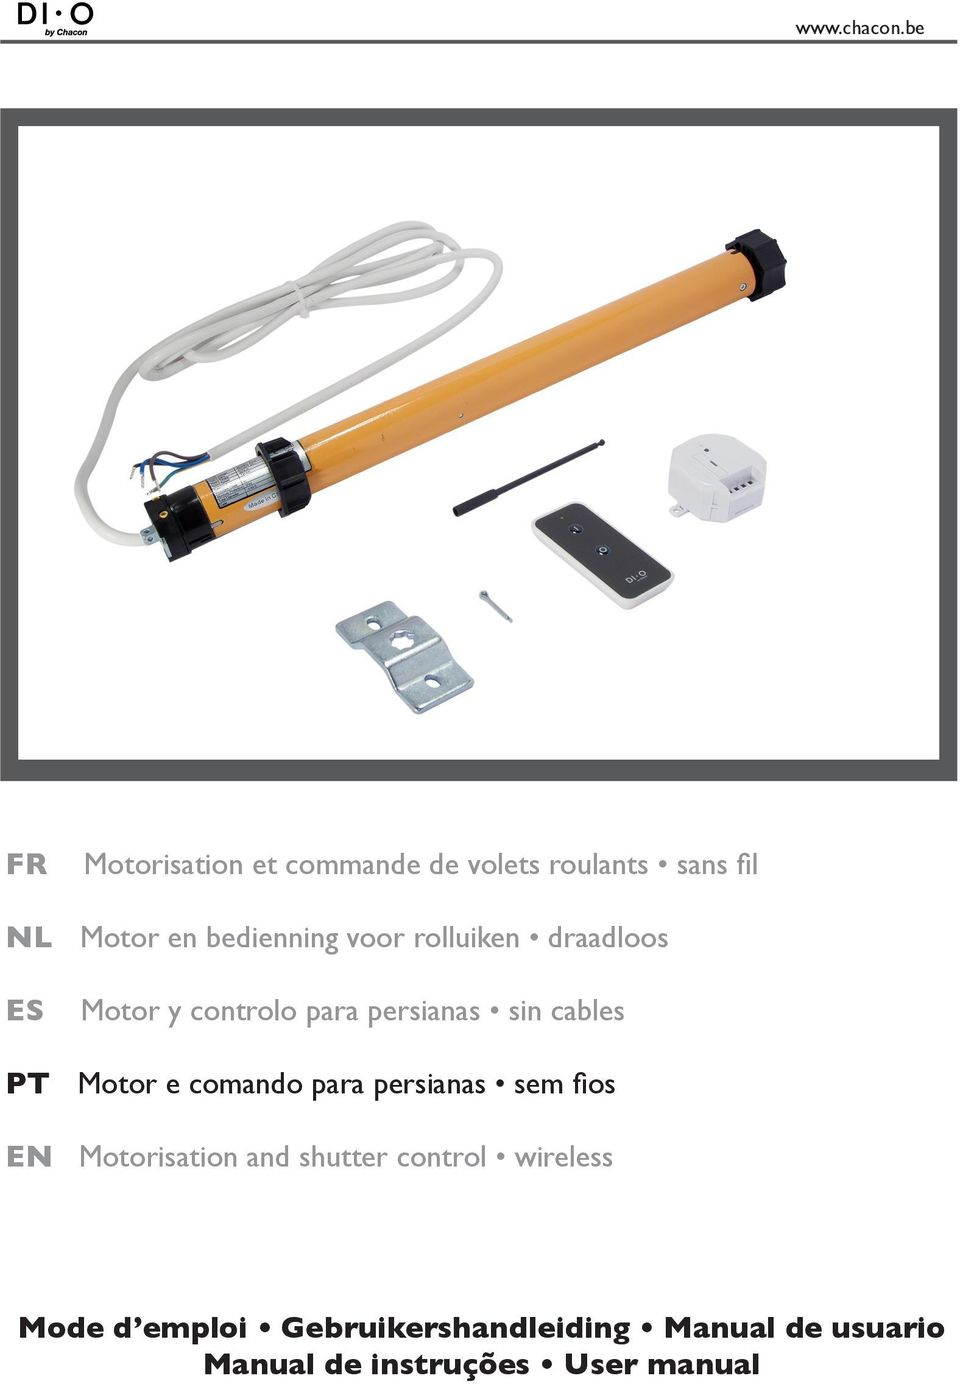 e comando para persianas sem fios EN Motorisation and shutter control wireless